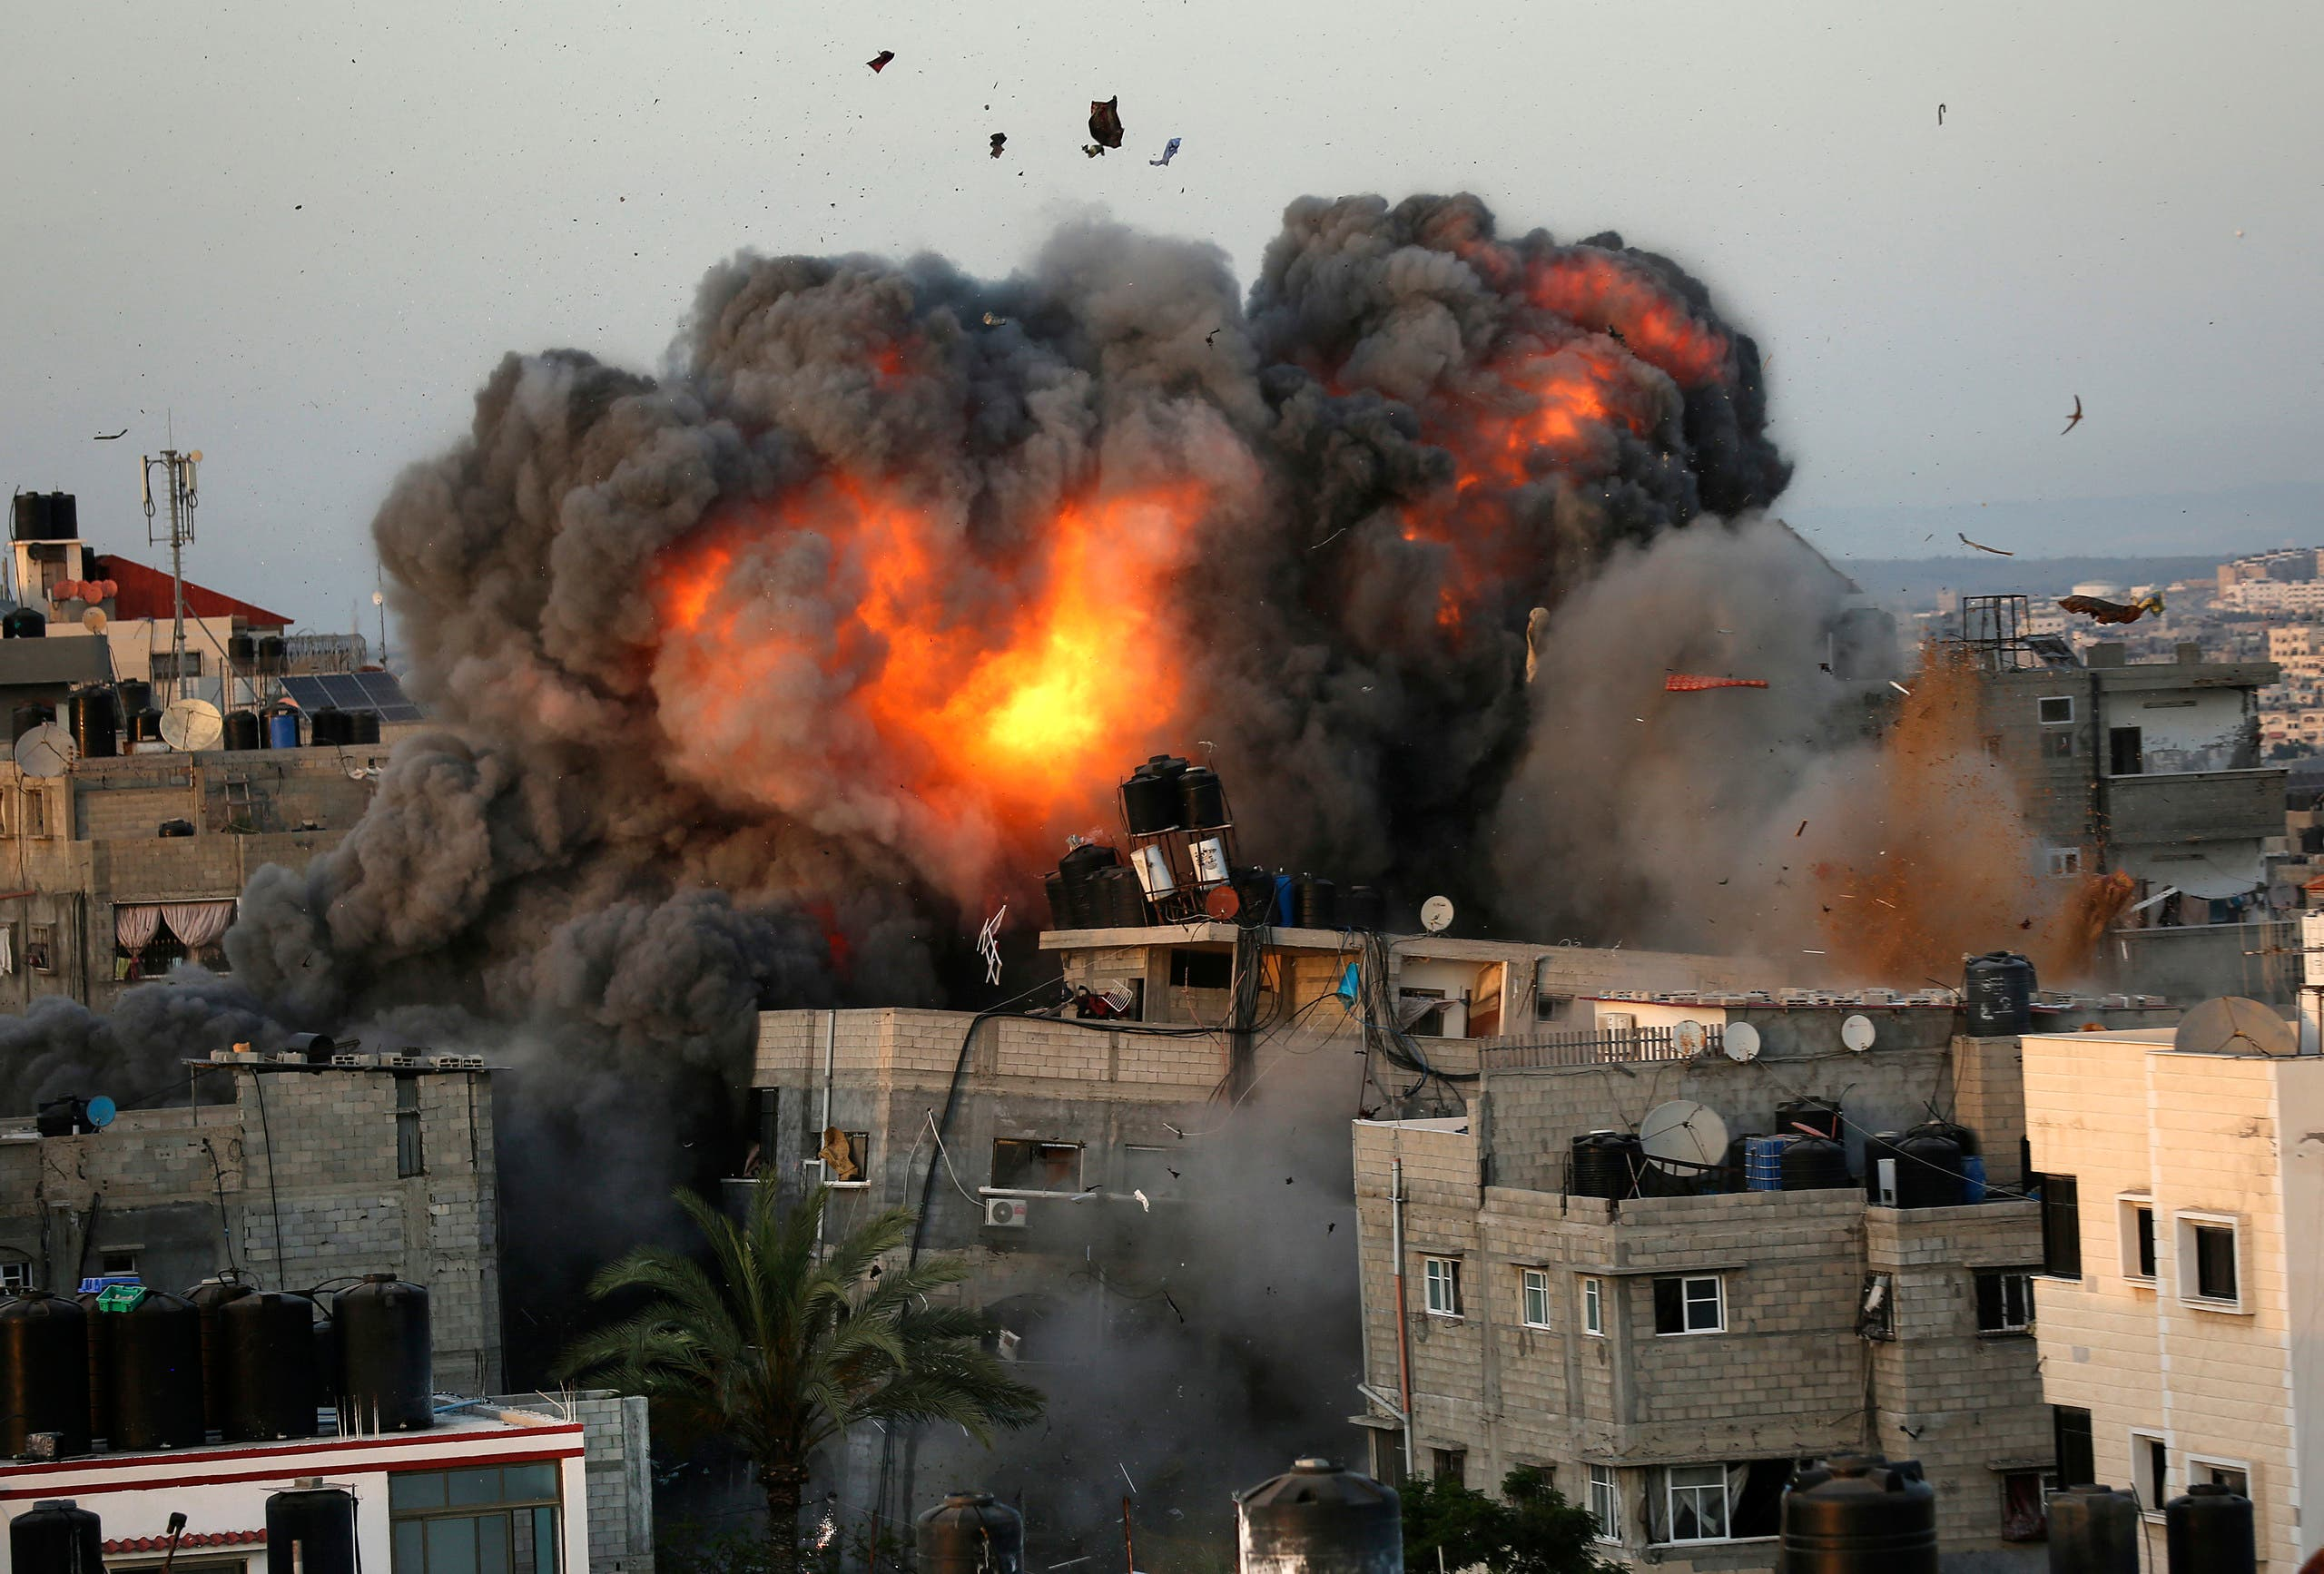 A ball of fire erupts from a building in Gaza City's Rimal residential district on May 16, 2021, during massive Israeli bombardment on the Hamas-controlled enclave. (AFP)